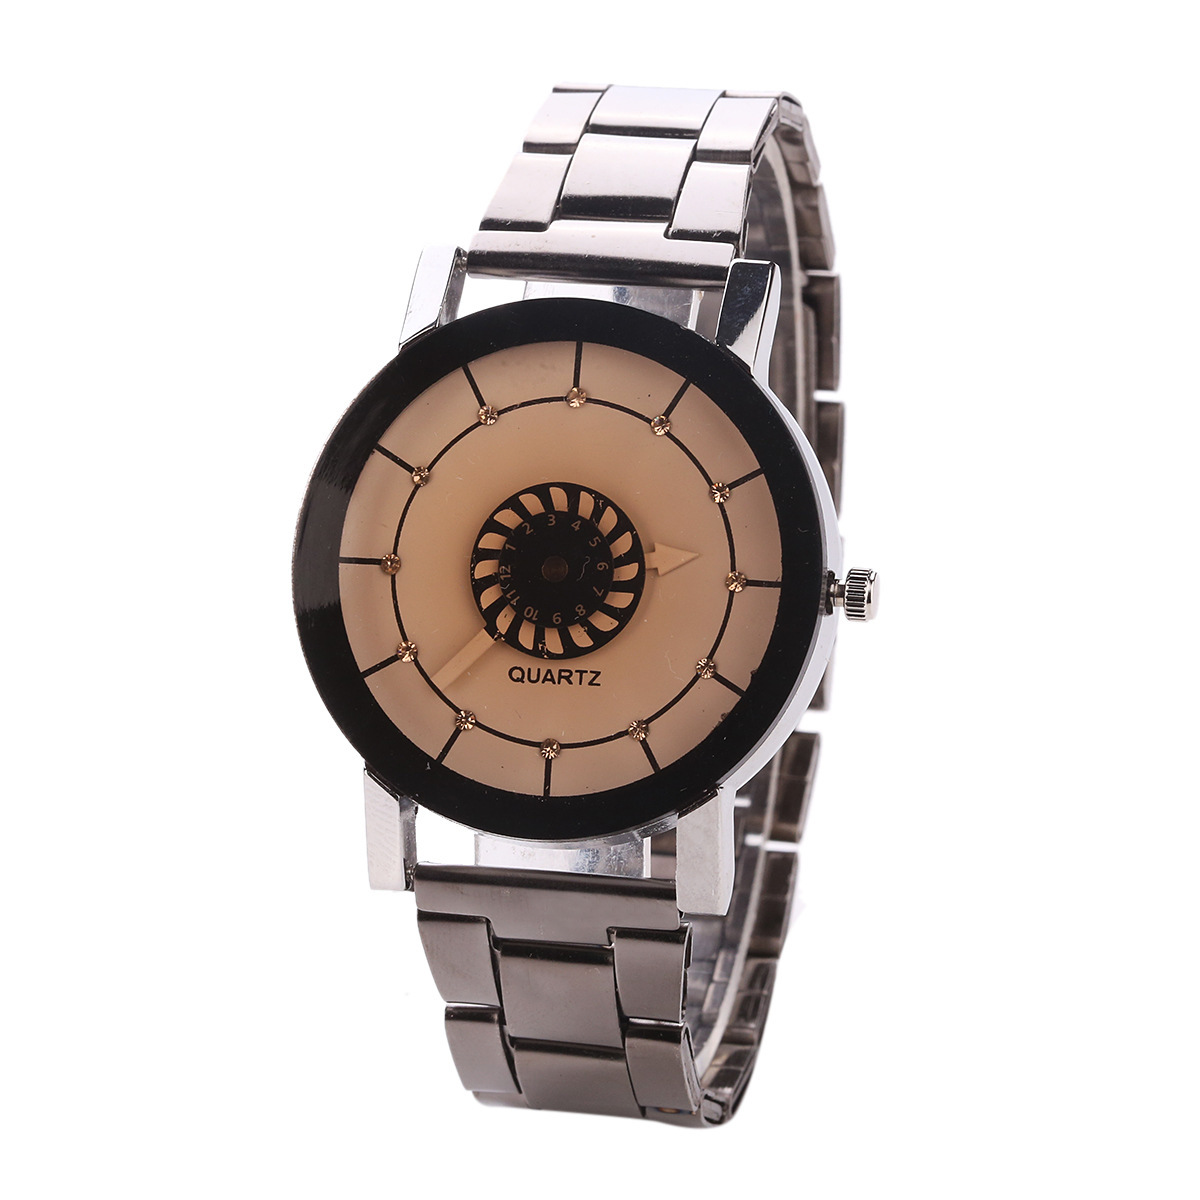 2018 Fashion High-end Men Ladies Quartz Watch Concise Clock Lovers Stainless Steel Wrist Watch Jewelry Gift For Men Women